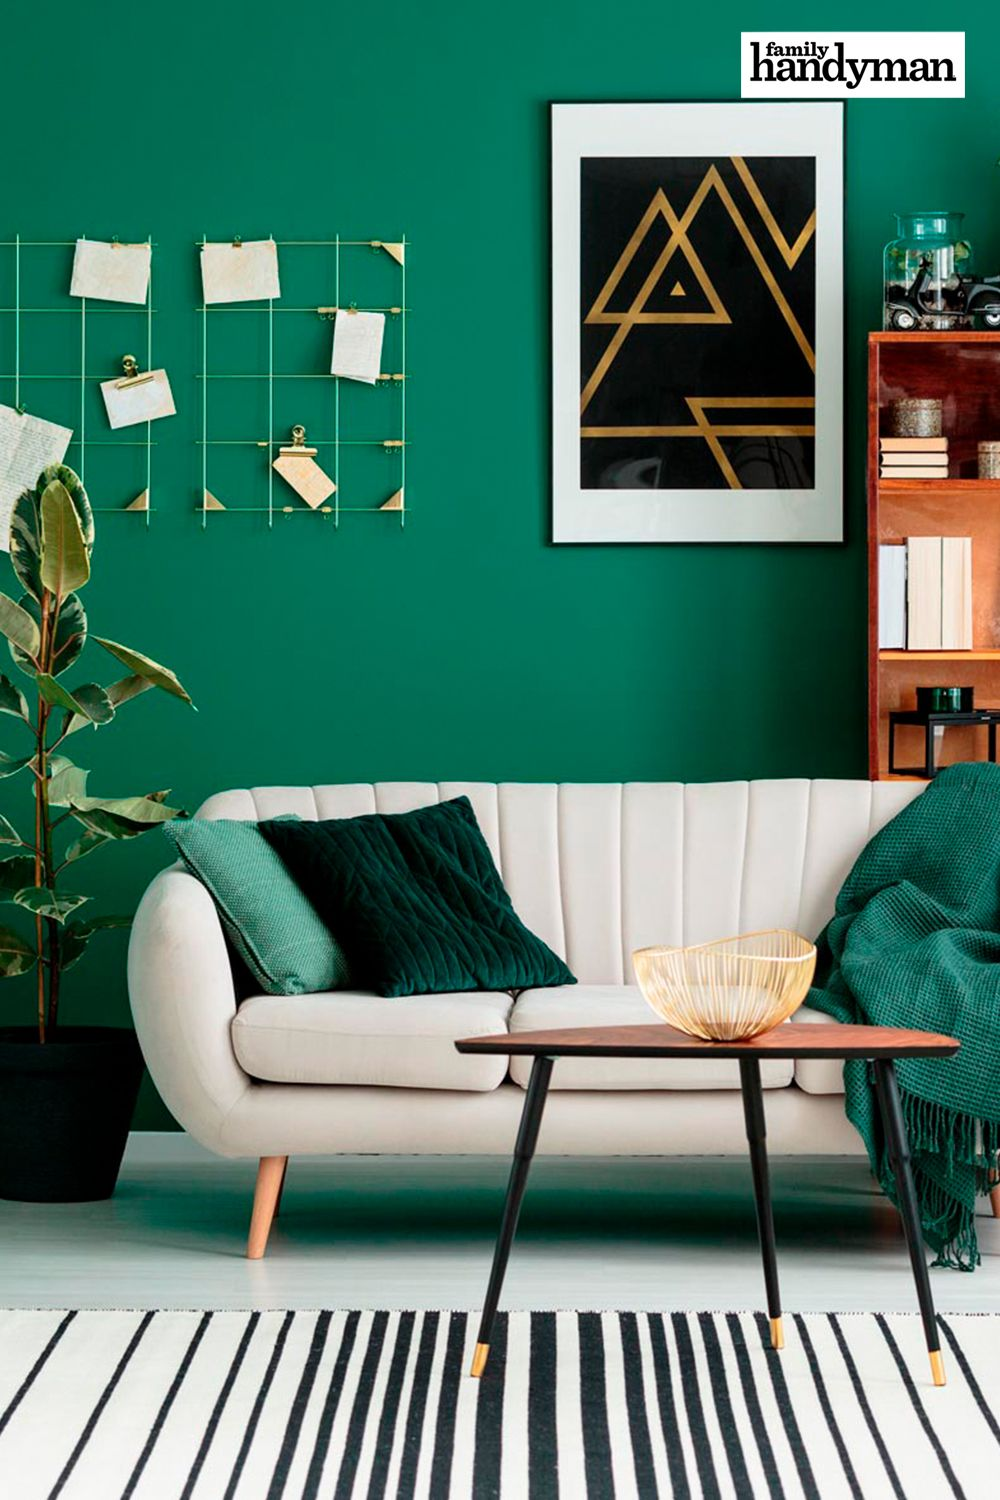 living room, white floor, green wall, white sofa, black plant pot, coffee table